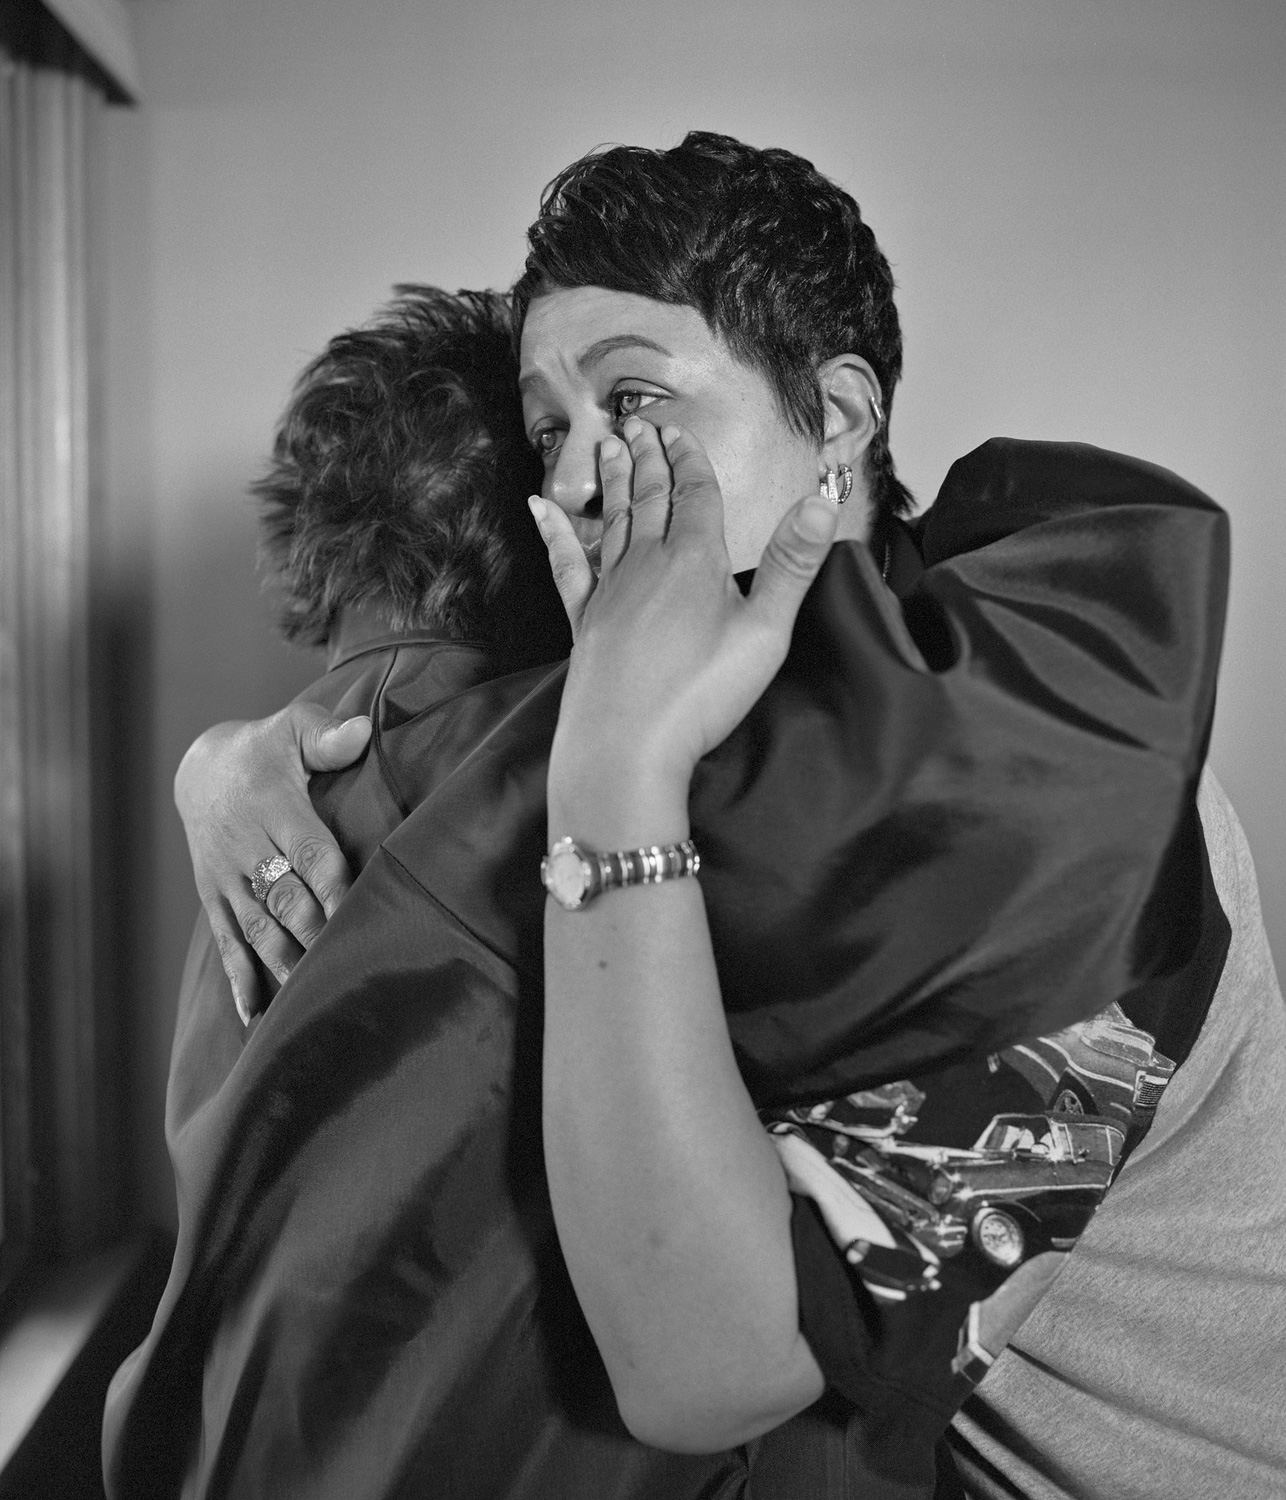 The end of the line what happens to a factory town when the factory shuts down new york times photo essay by latoya ruby frazier